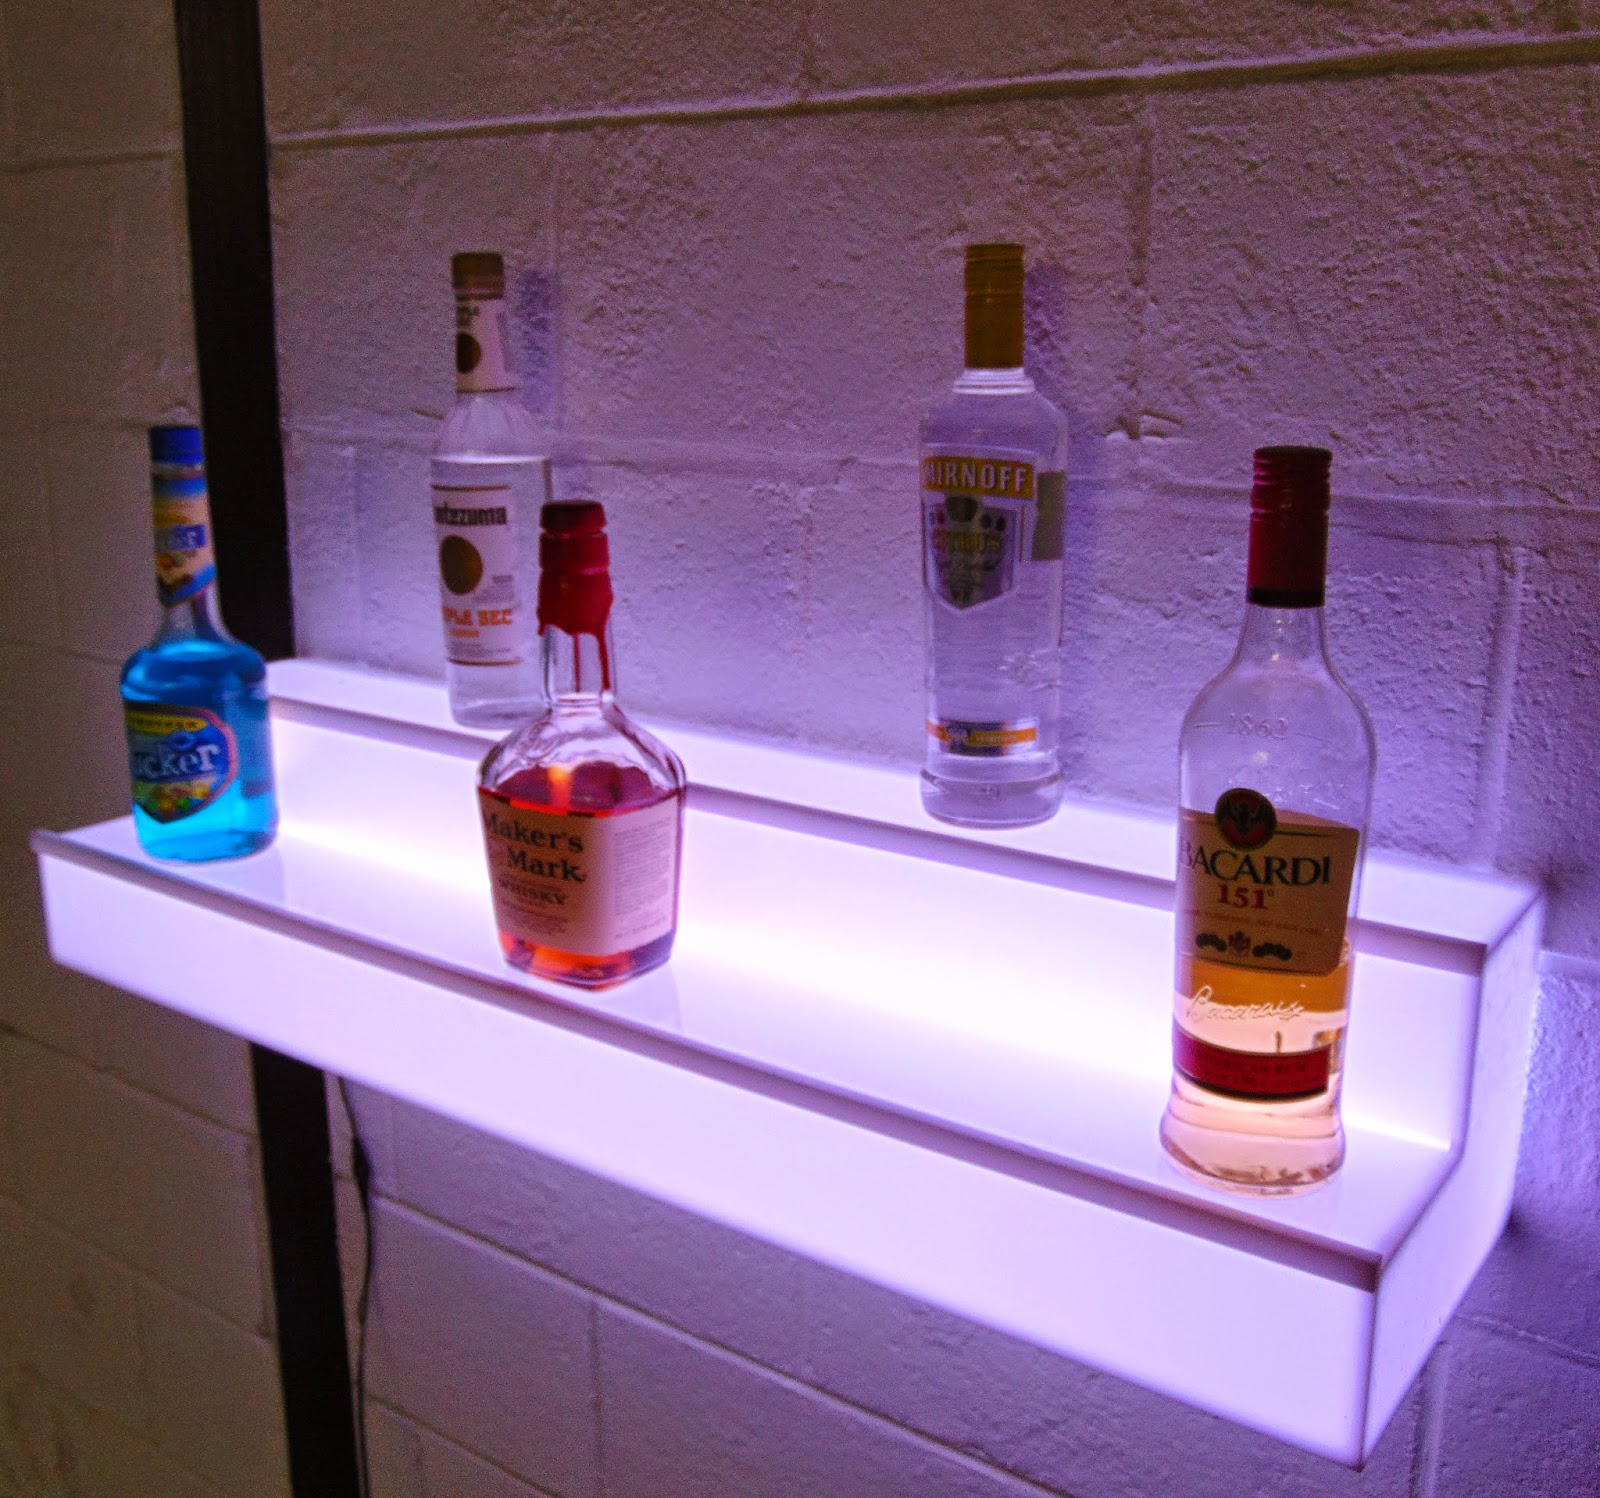 Barchefs Light Up Floating Wall Shelves Add Ambience To